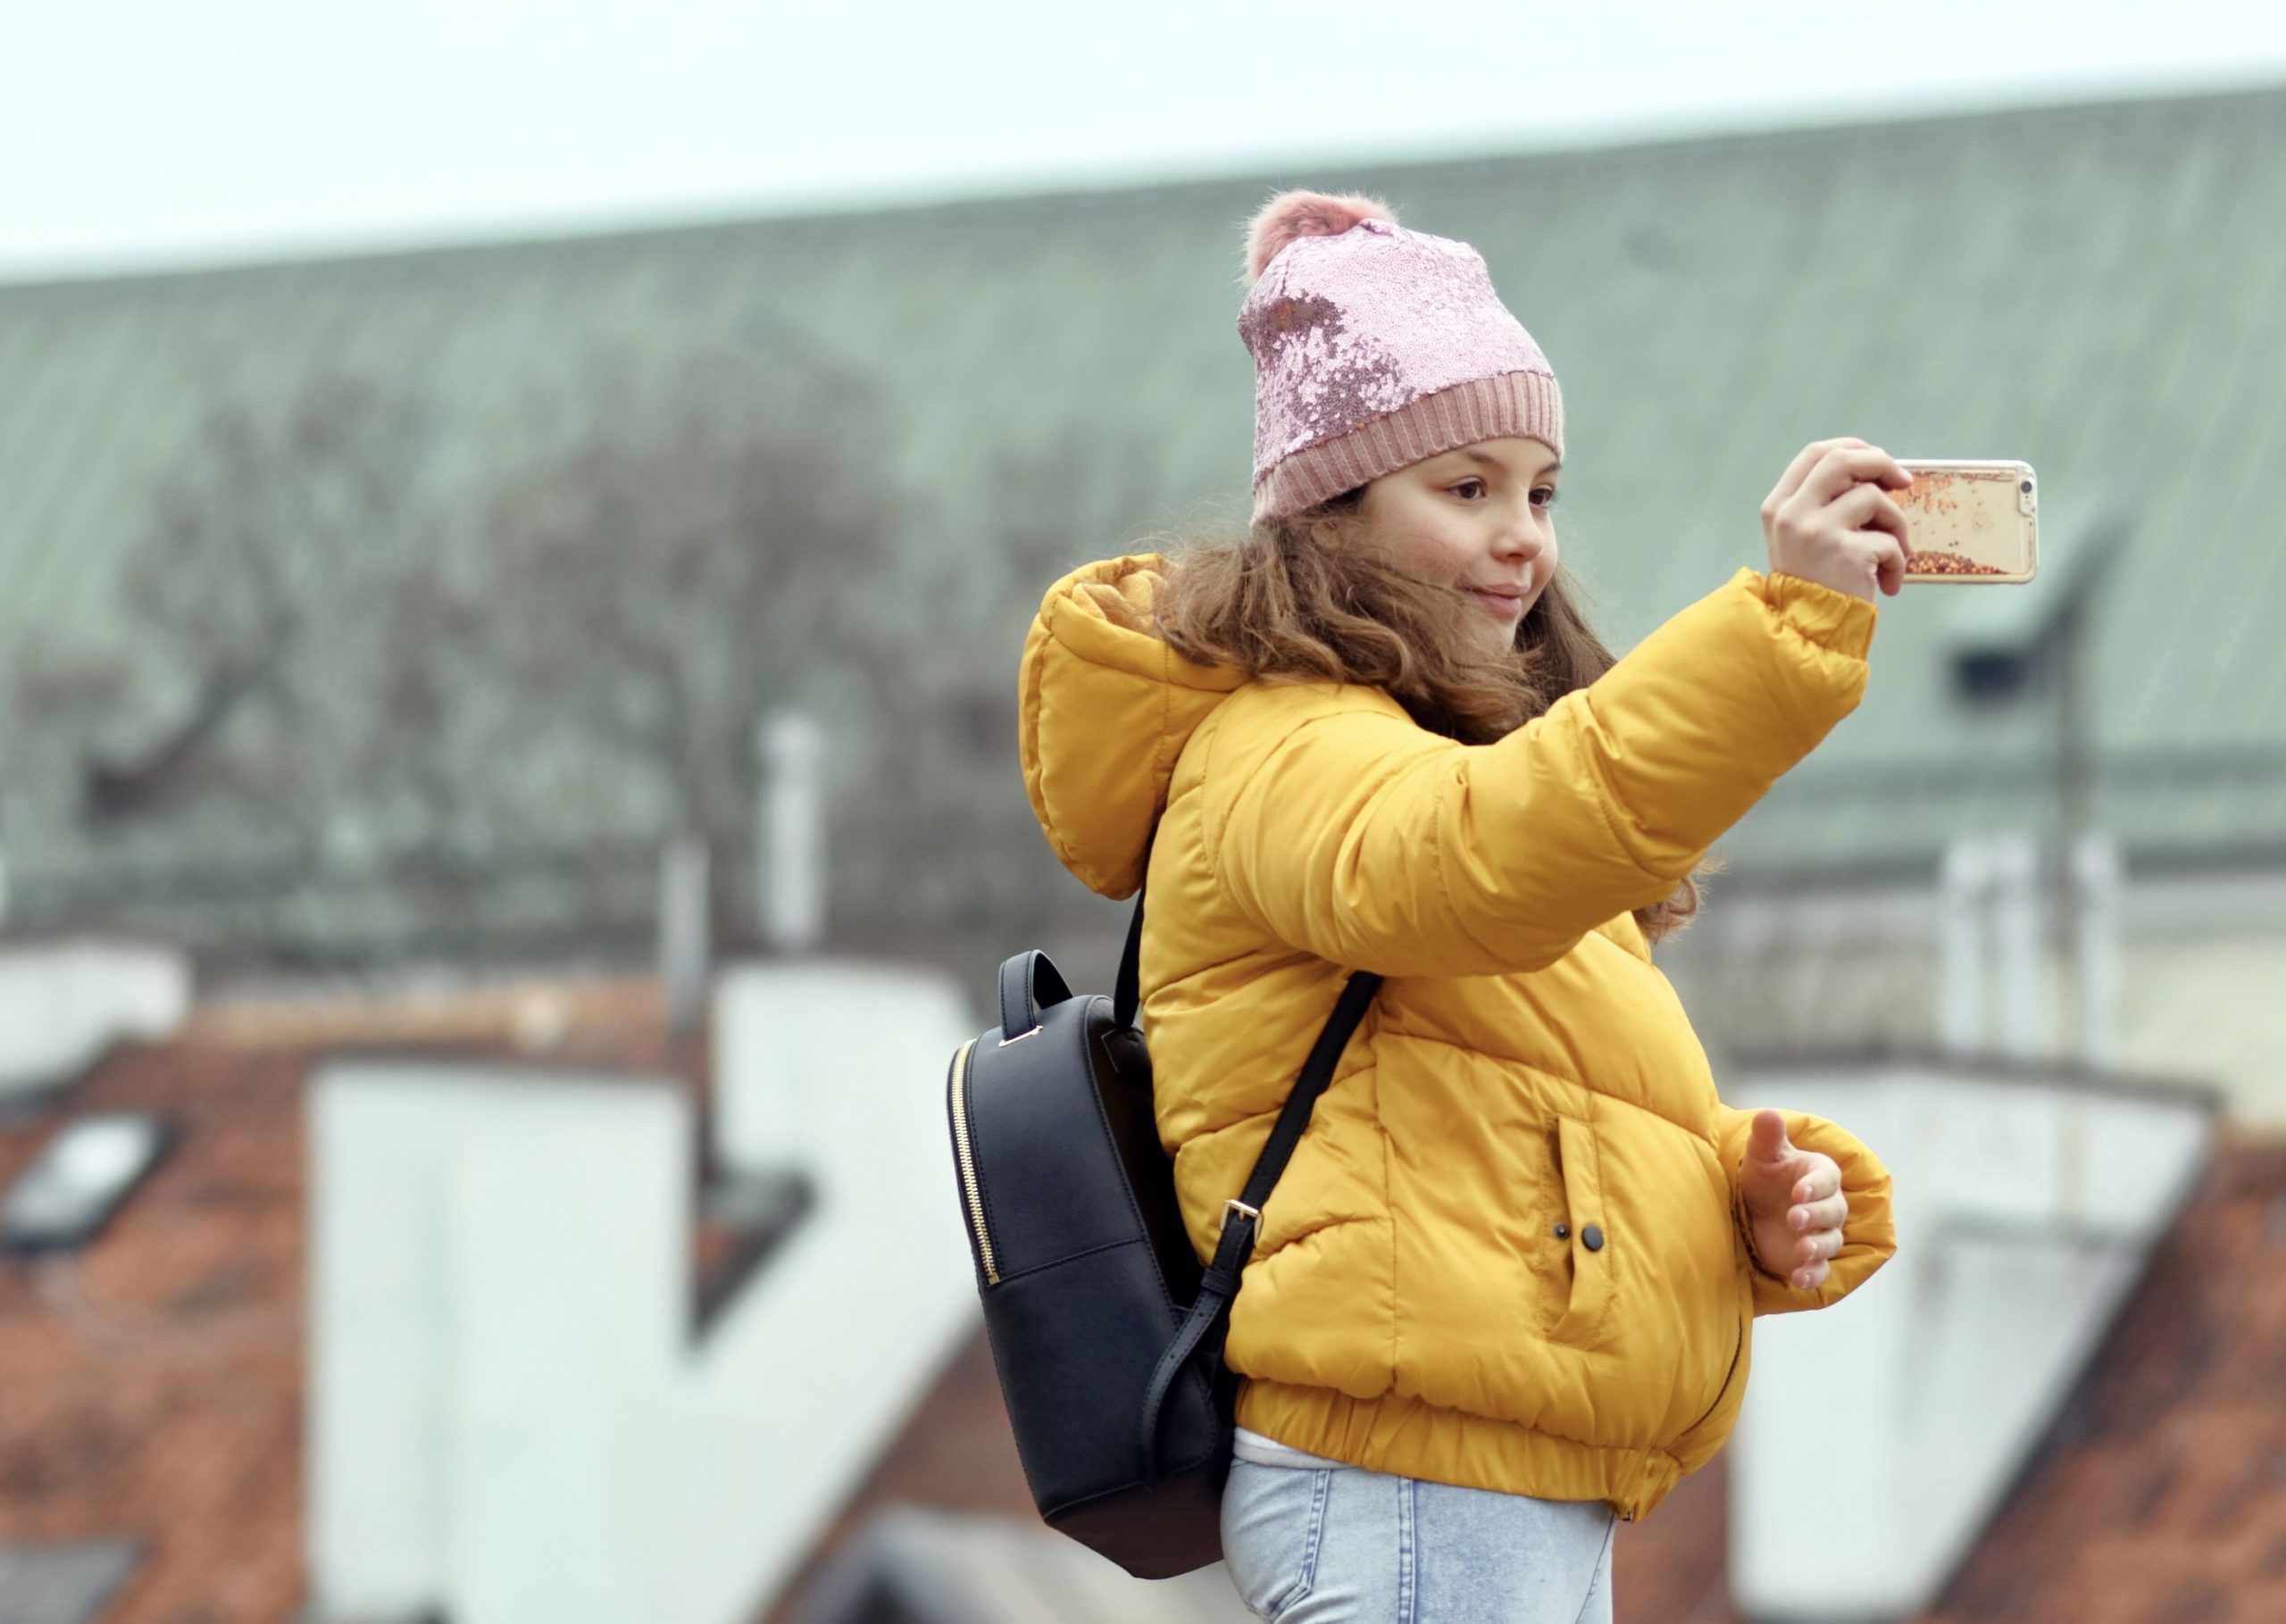 Young girl in pink hat taking selfie